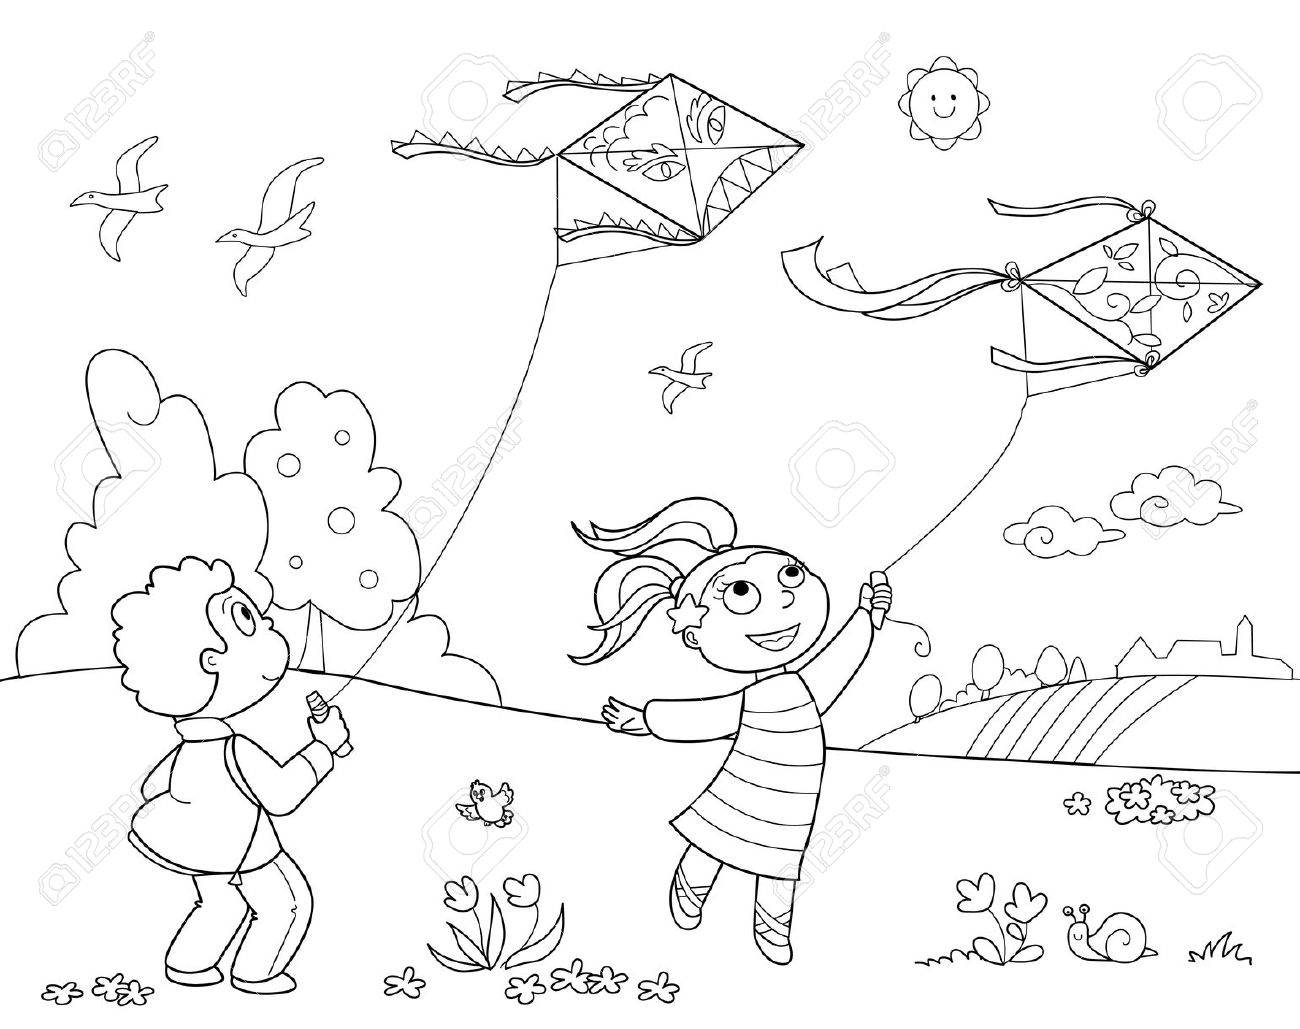 children playing in the park clipart black and white 14 » clipart